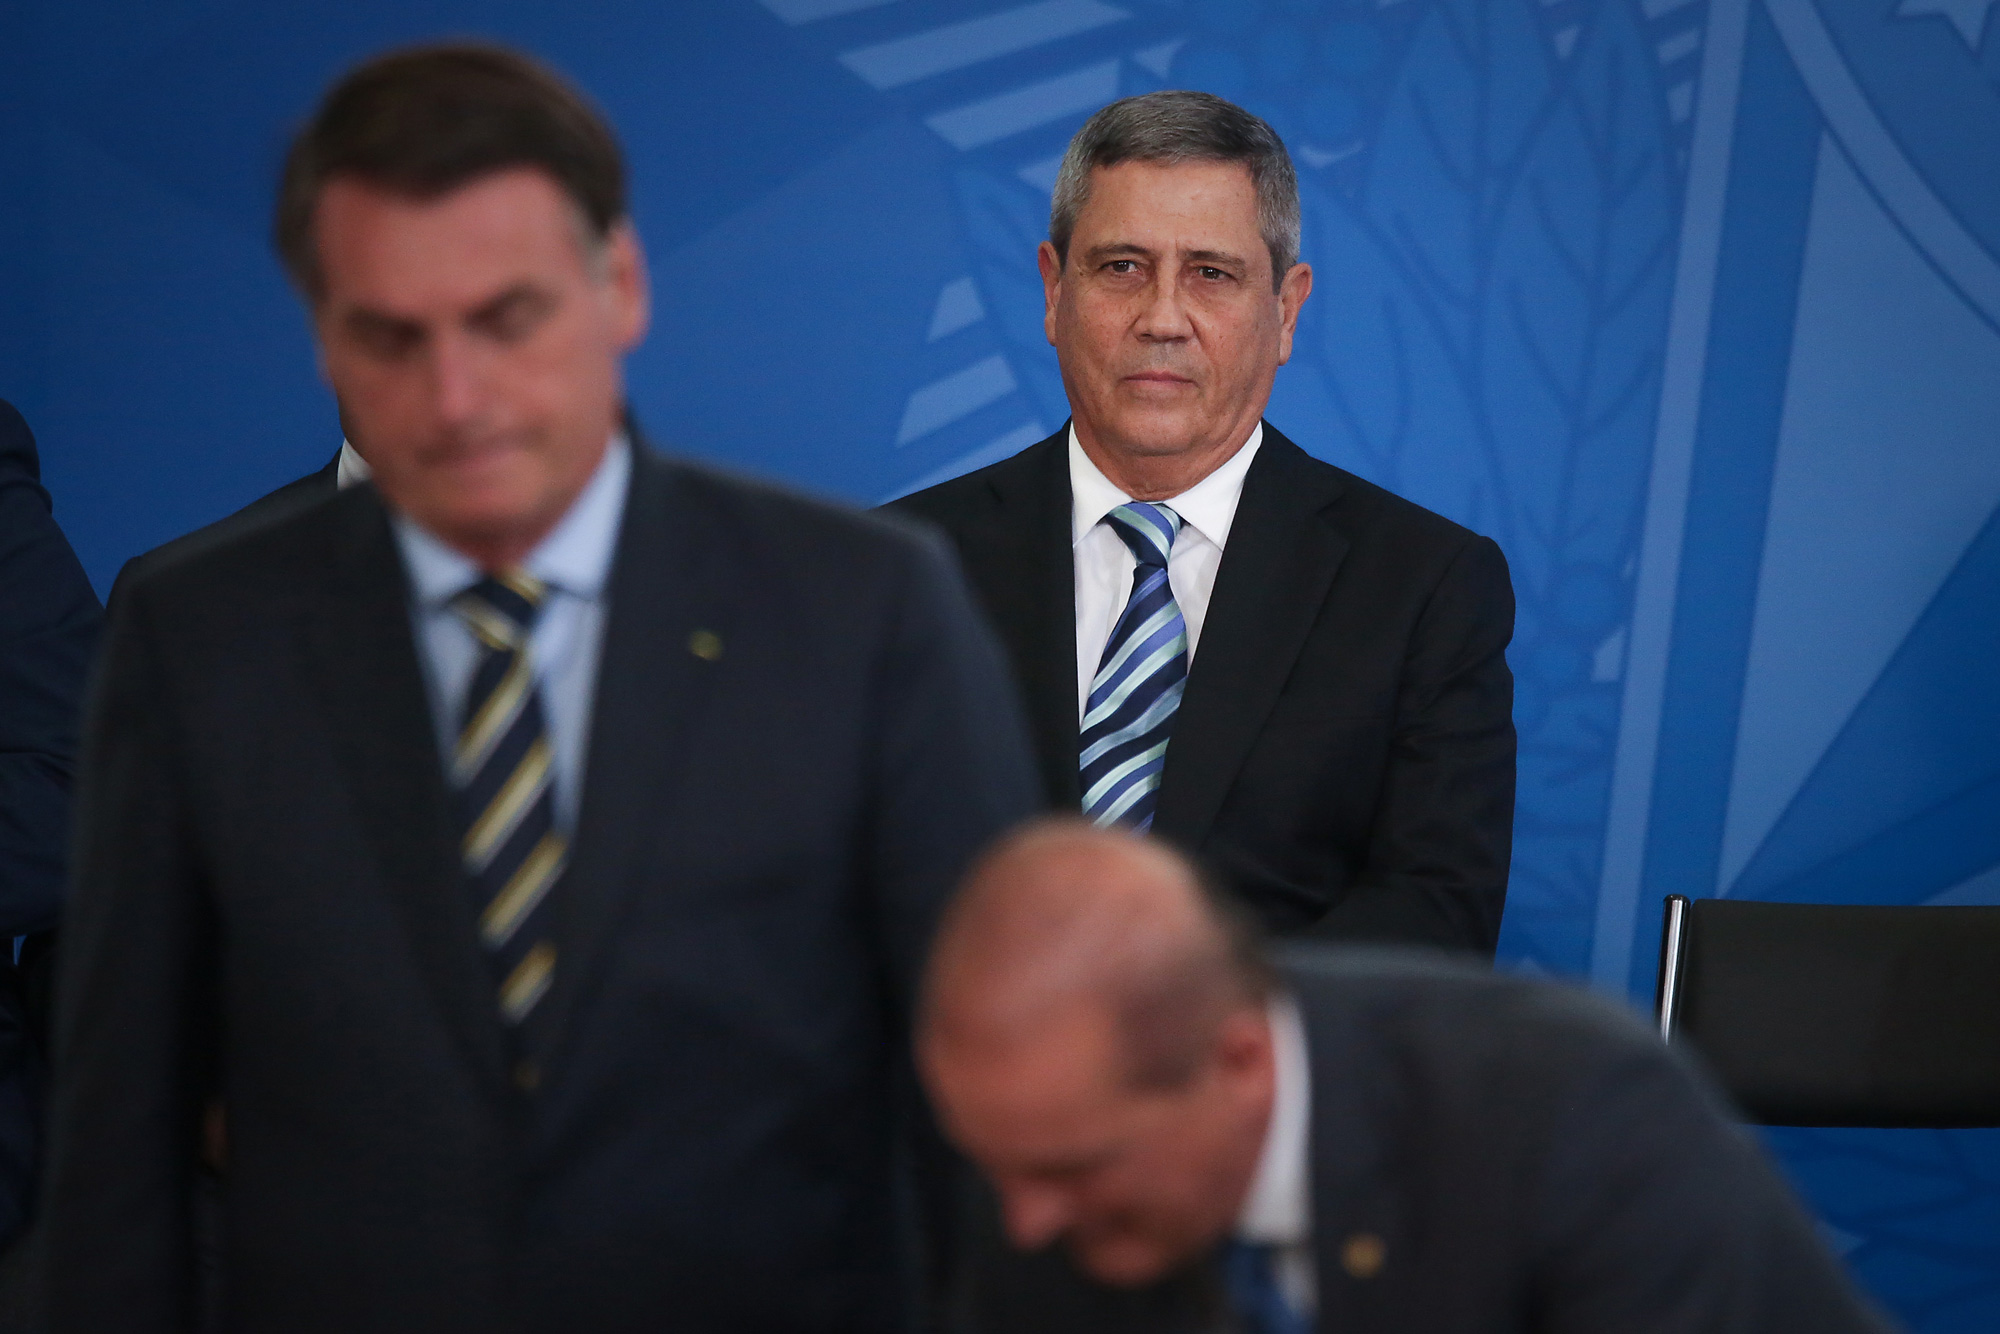 Walter Braga Netto, Brazil's incoming chief of staff, listens during a swearing-in ceremony at the Planalto Palace in Brasilia, Brazil, on Tuesday, Feb. 18, 2020. Brazil's slumping currency, the worst in the world year-to-date, was front and center of controversial remarks made by the nation's economy minister,Paulo Guedes.Photographer: Andre Coelho/Bloomberg via Getty Images